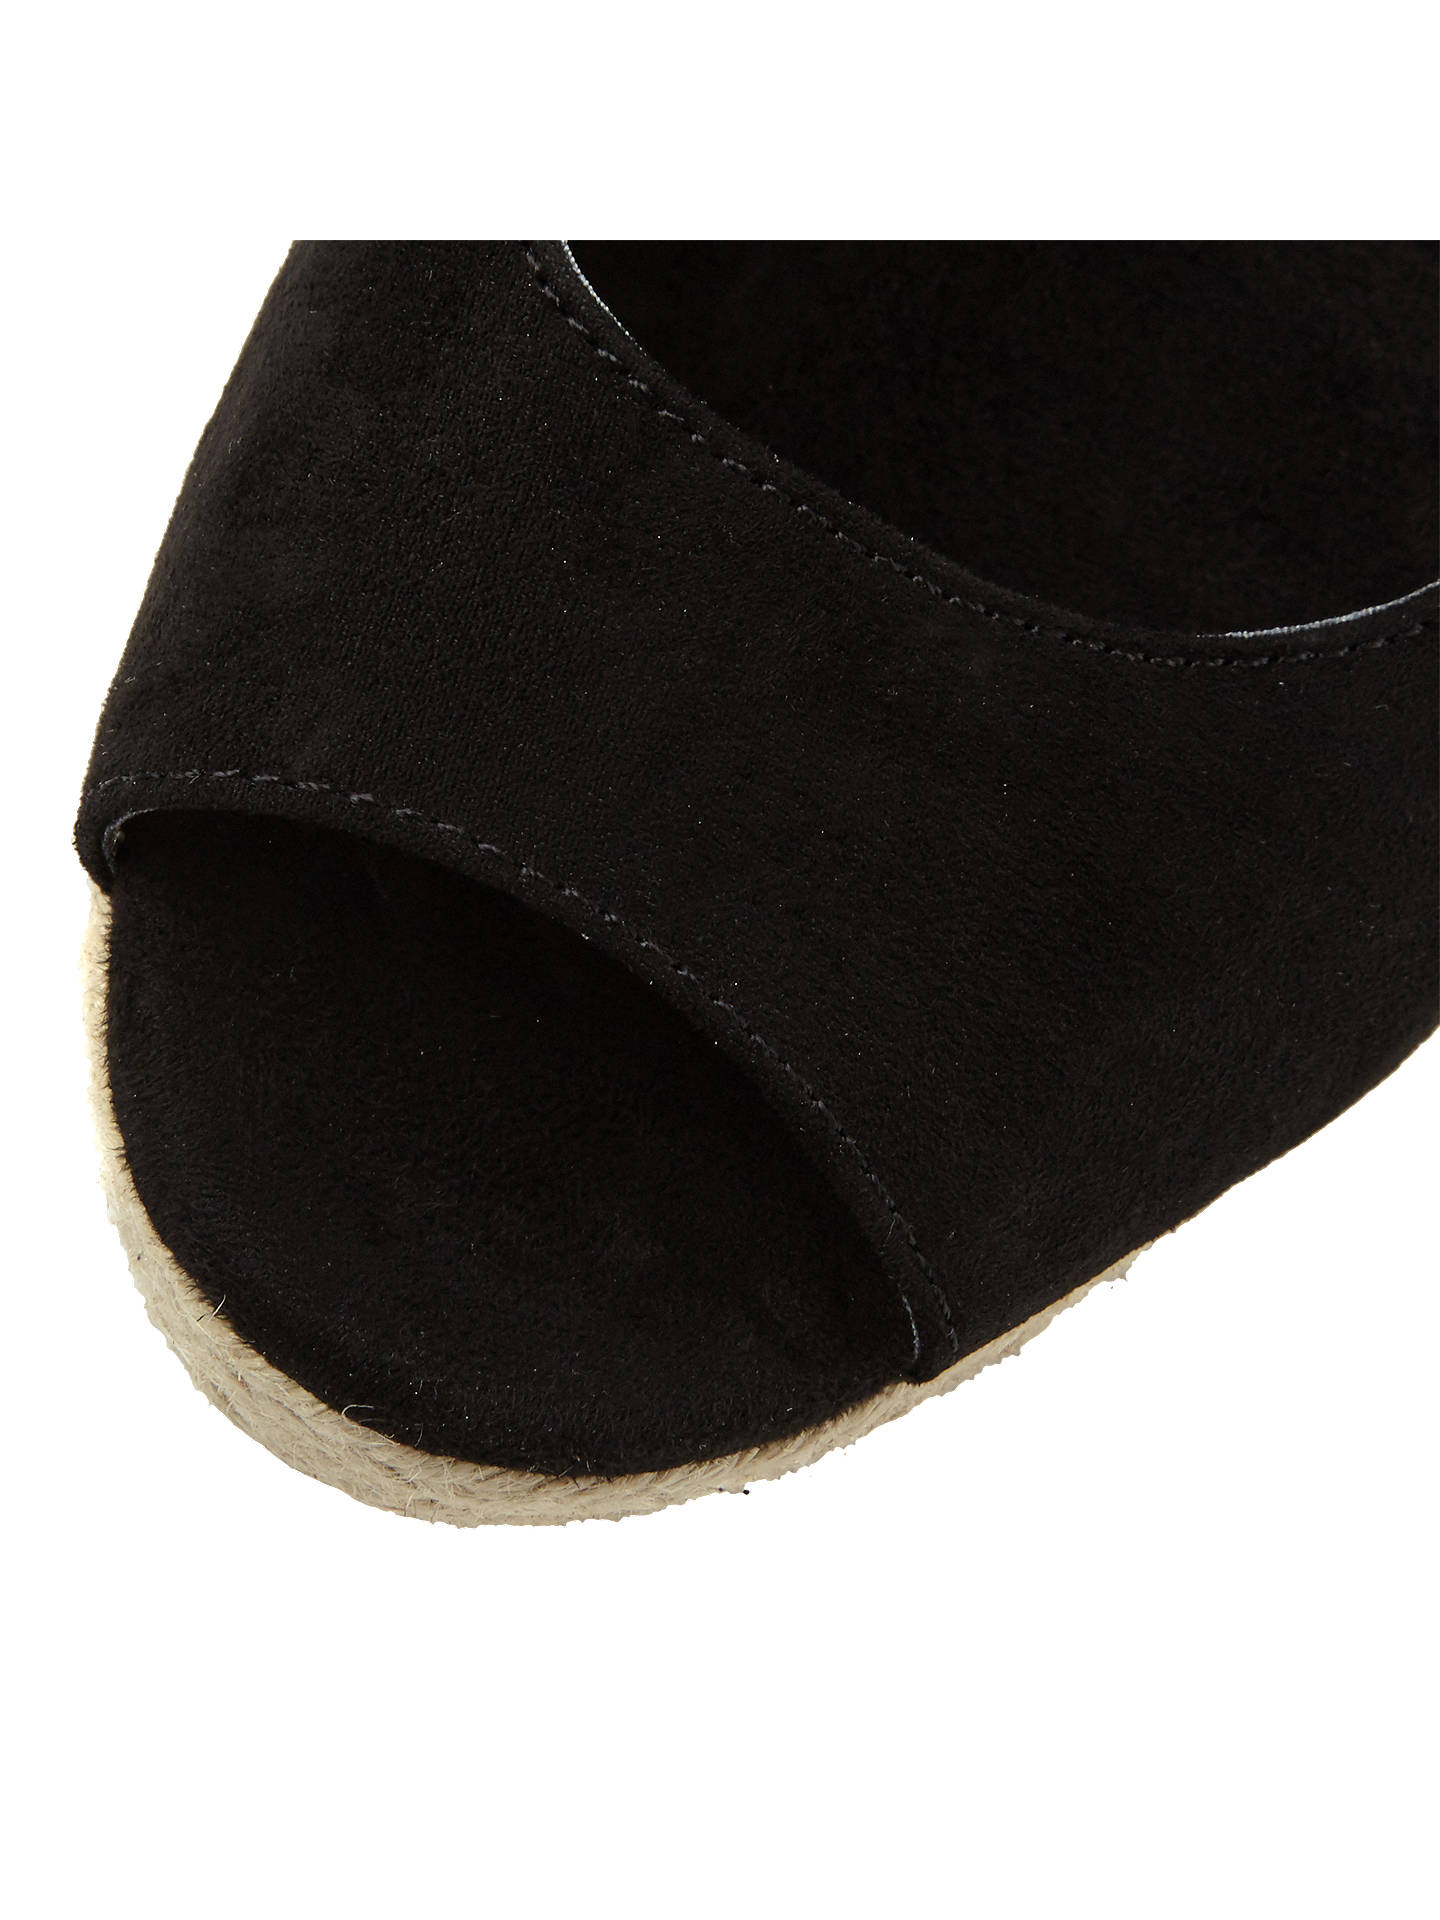 BuyDune Klicks Wedge Heel Sandals, Black, 3 Online at johnlewis.com